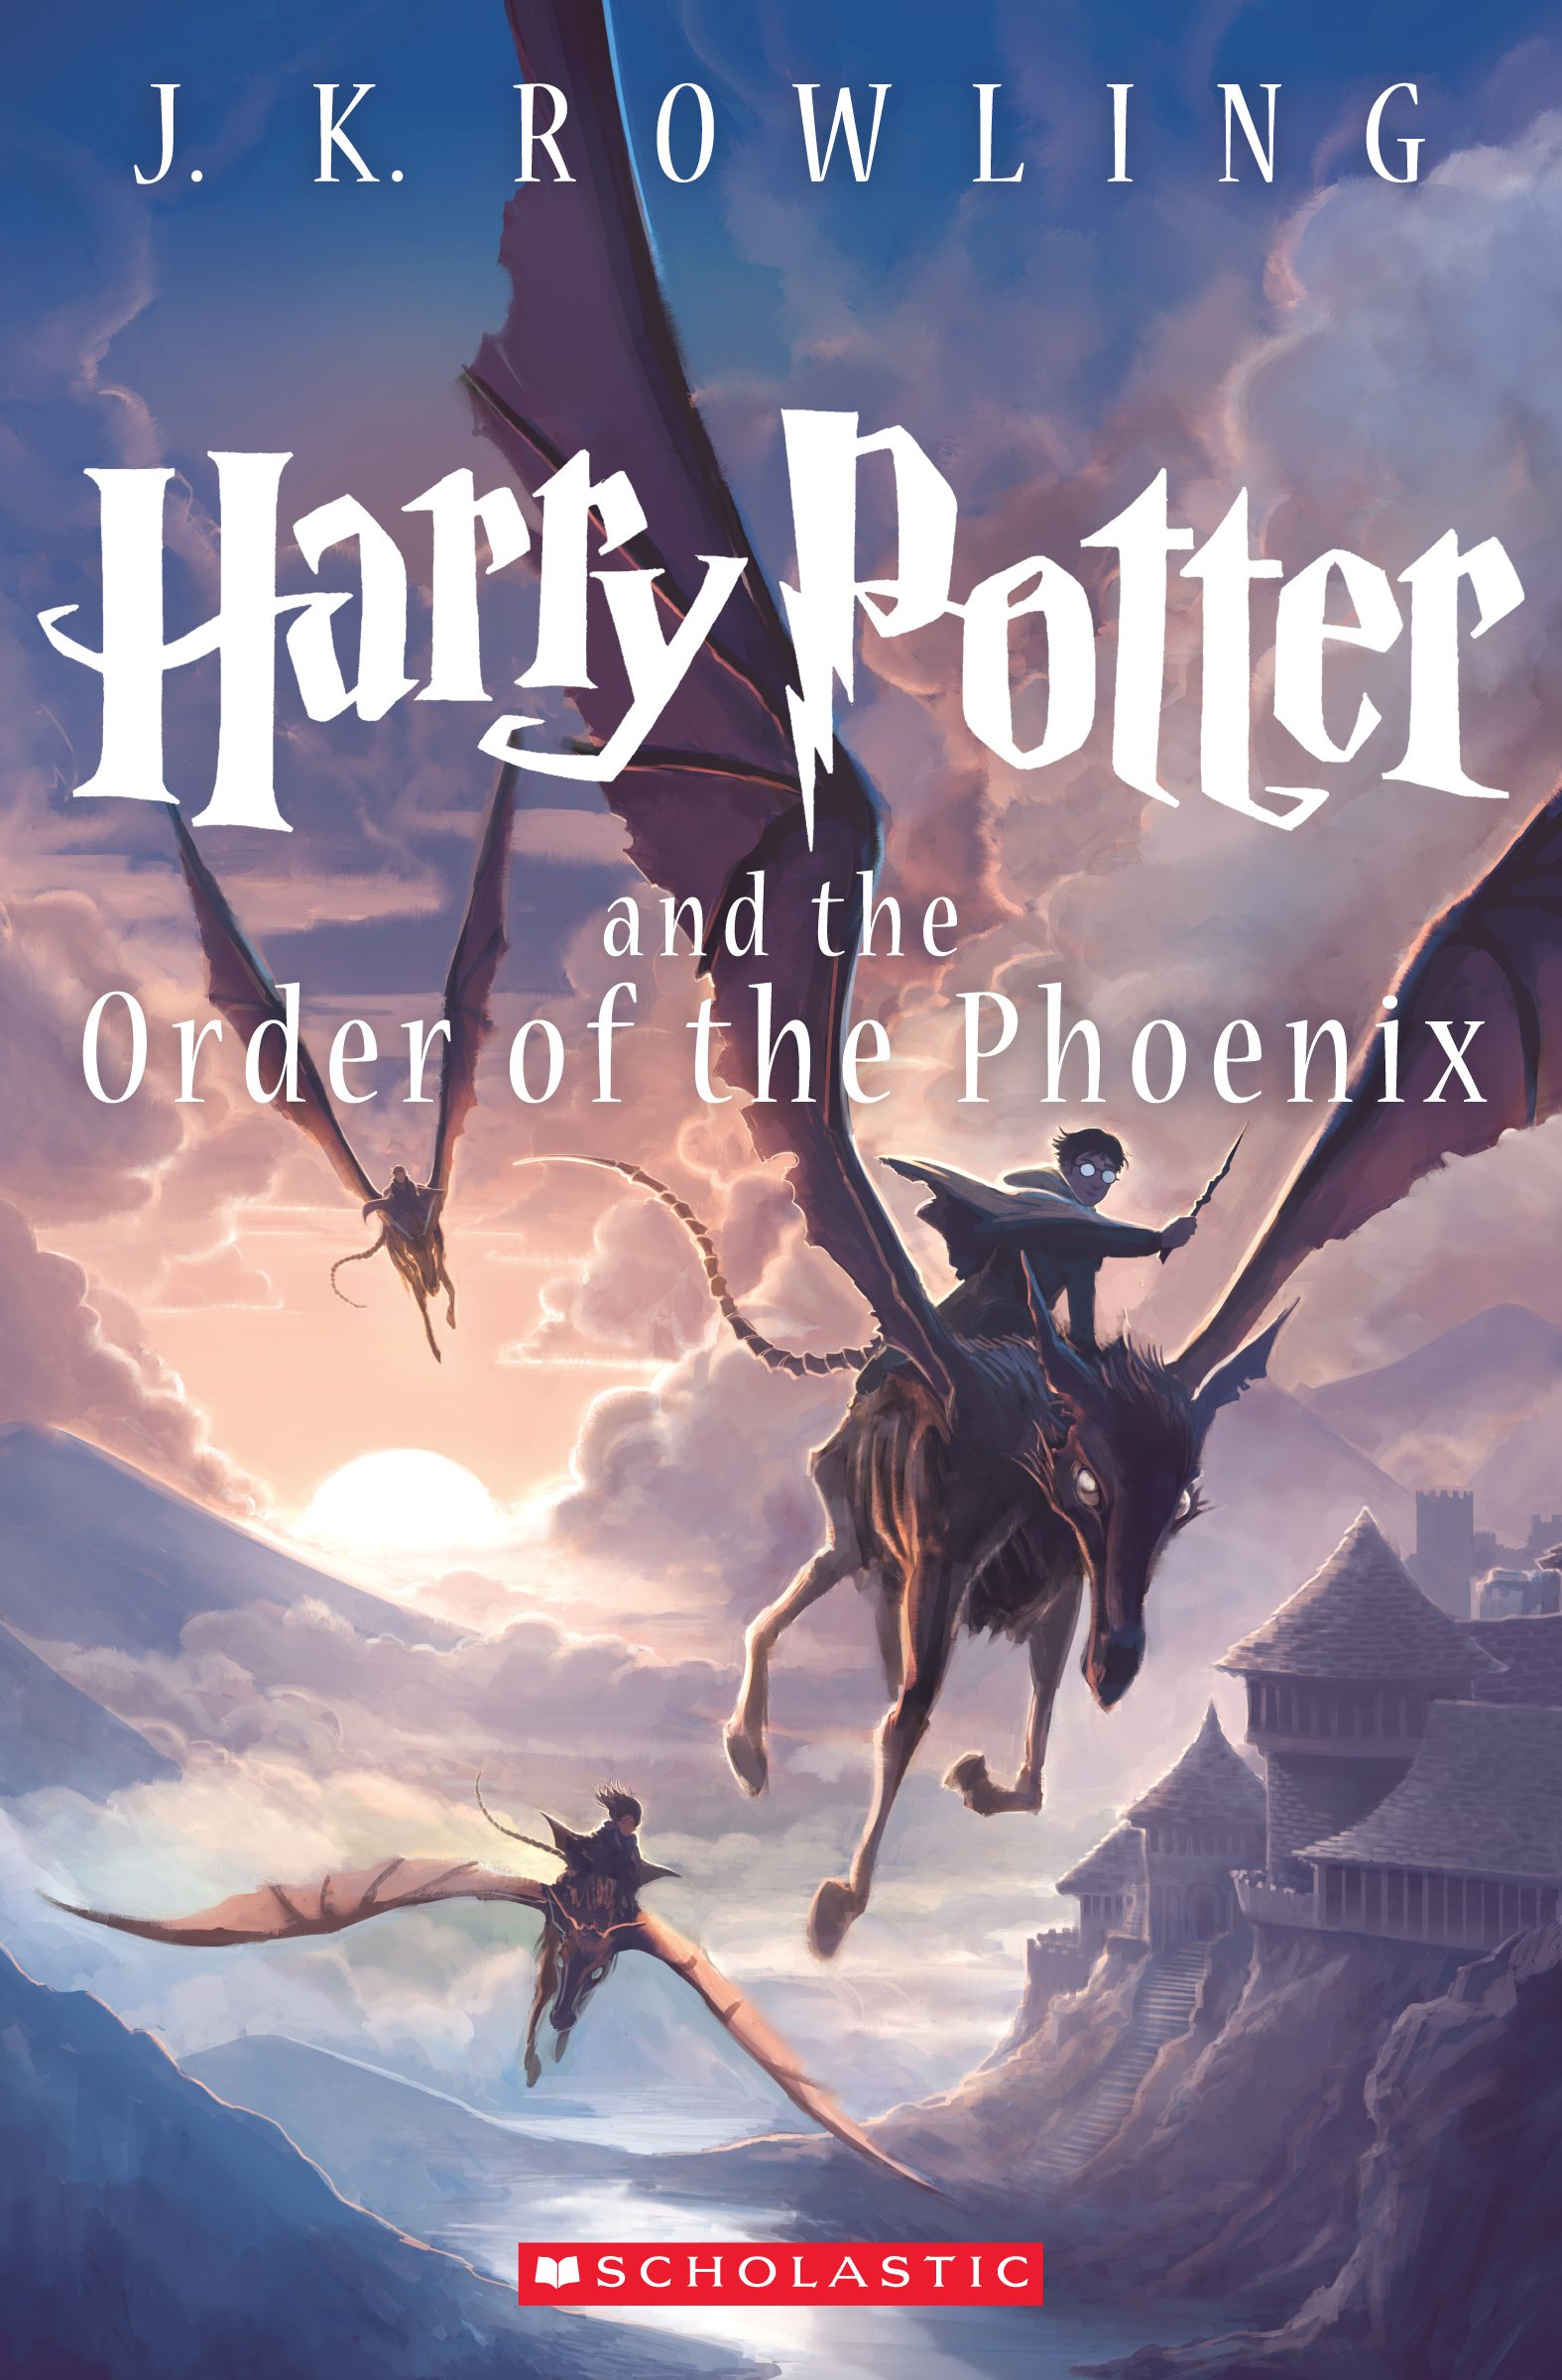 final harry potter cover reveal today at scholastic store geekdad. Black Bedroom Furniture Sets. Home Design Ideas